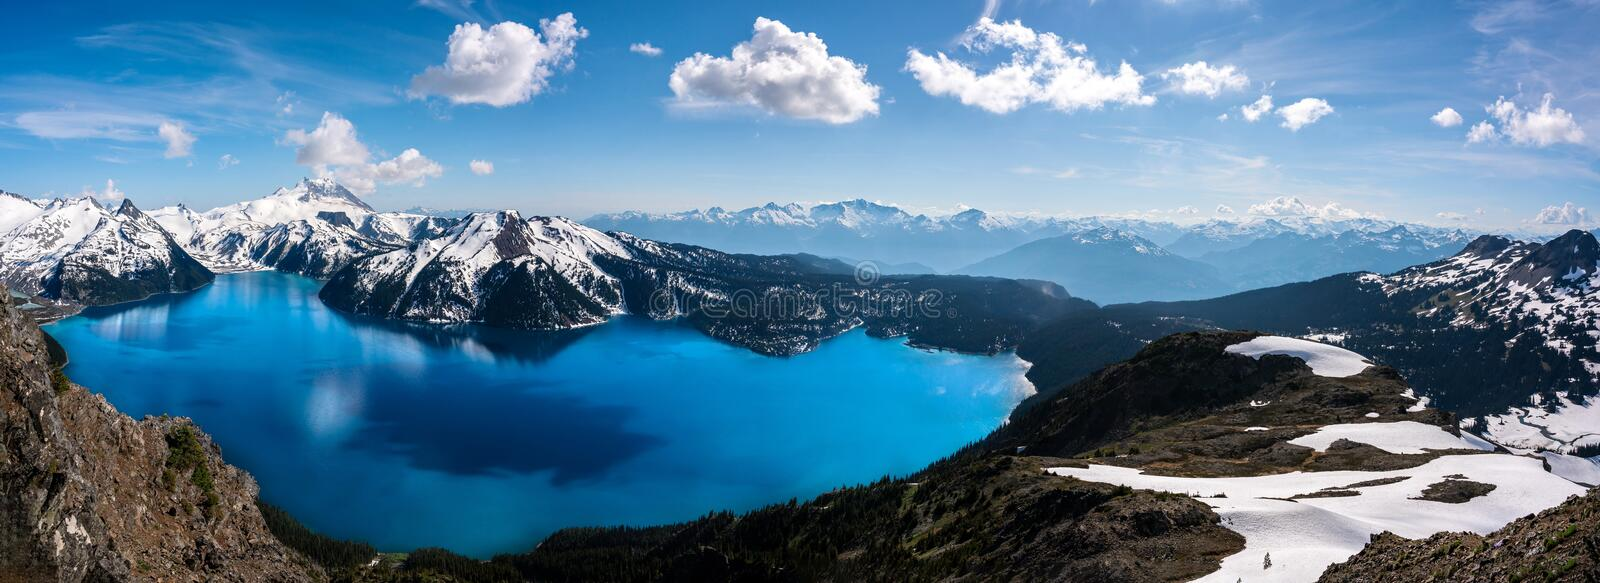 Panoramic view of mountains and turquoise coloured lake in Garibaldi provincial park, BC, Canada. Snow mountains and blue sky royalty free stock images